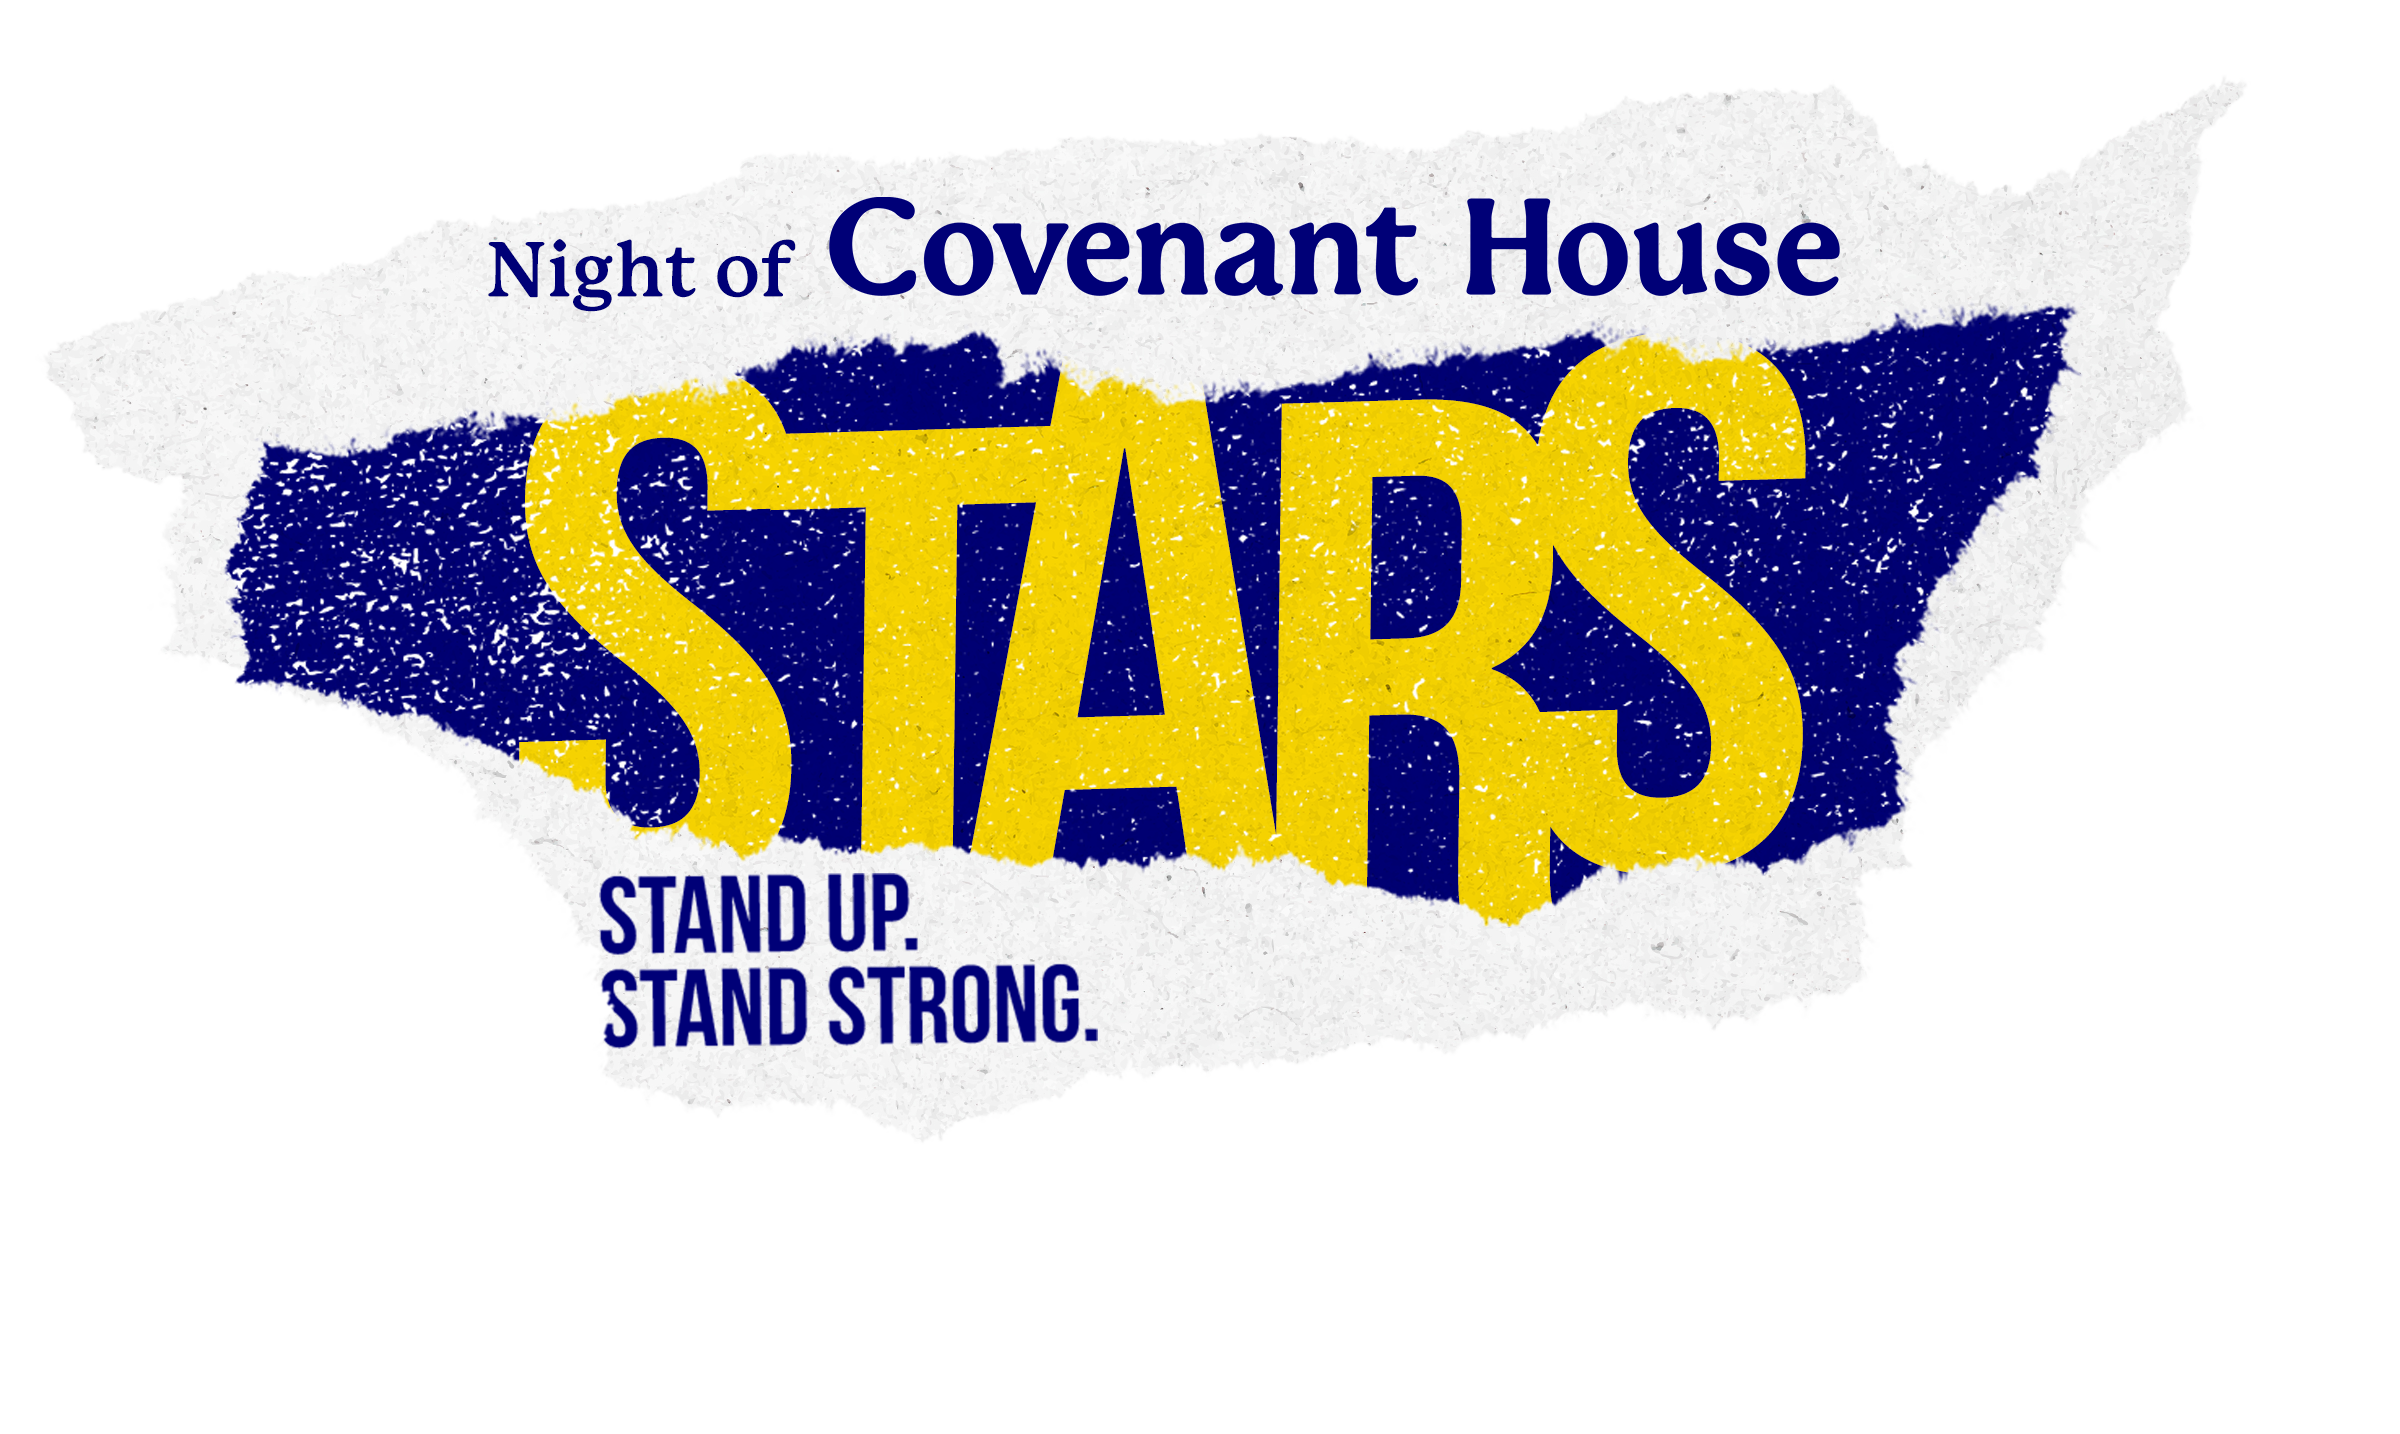 Night of Covenant House Stars logo